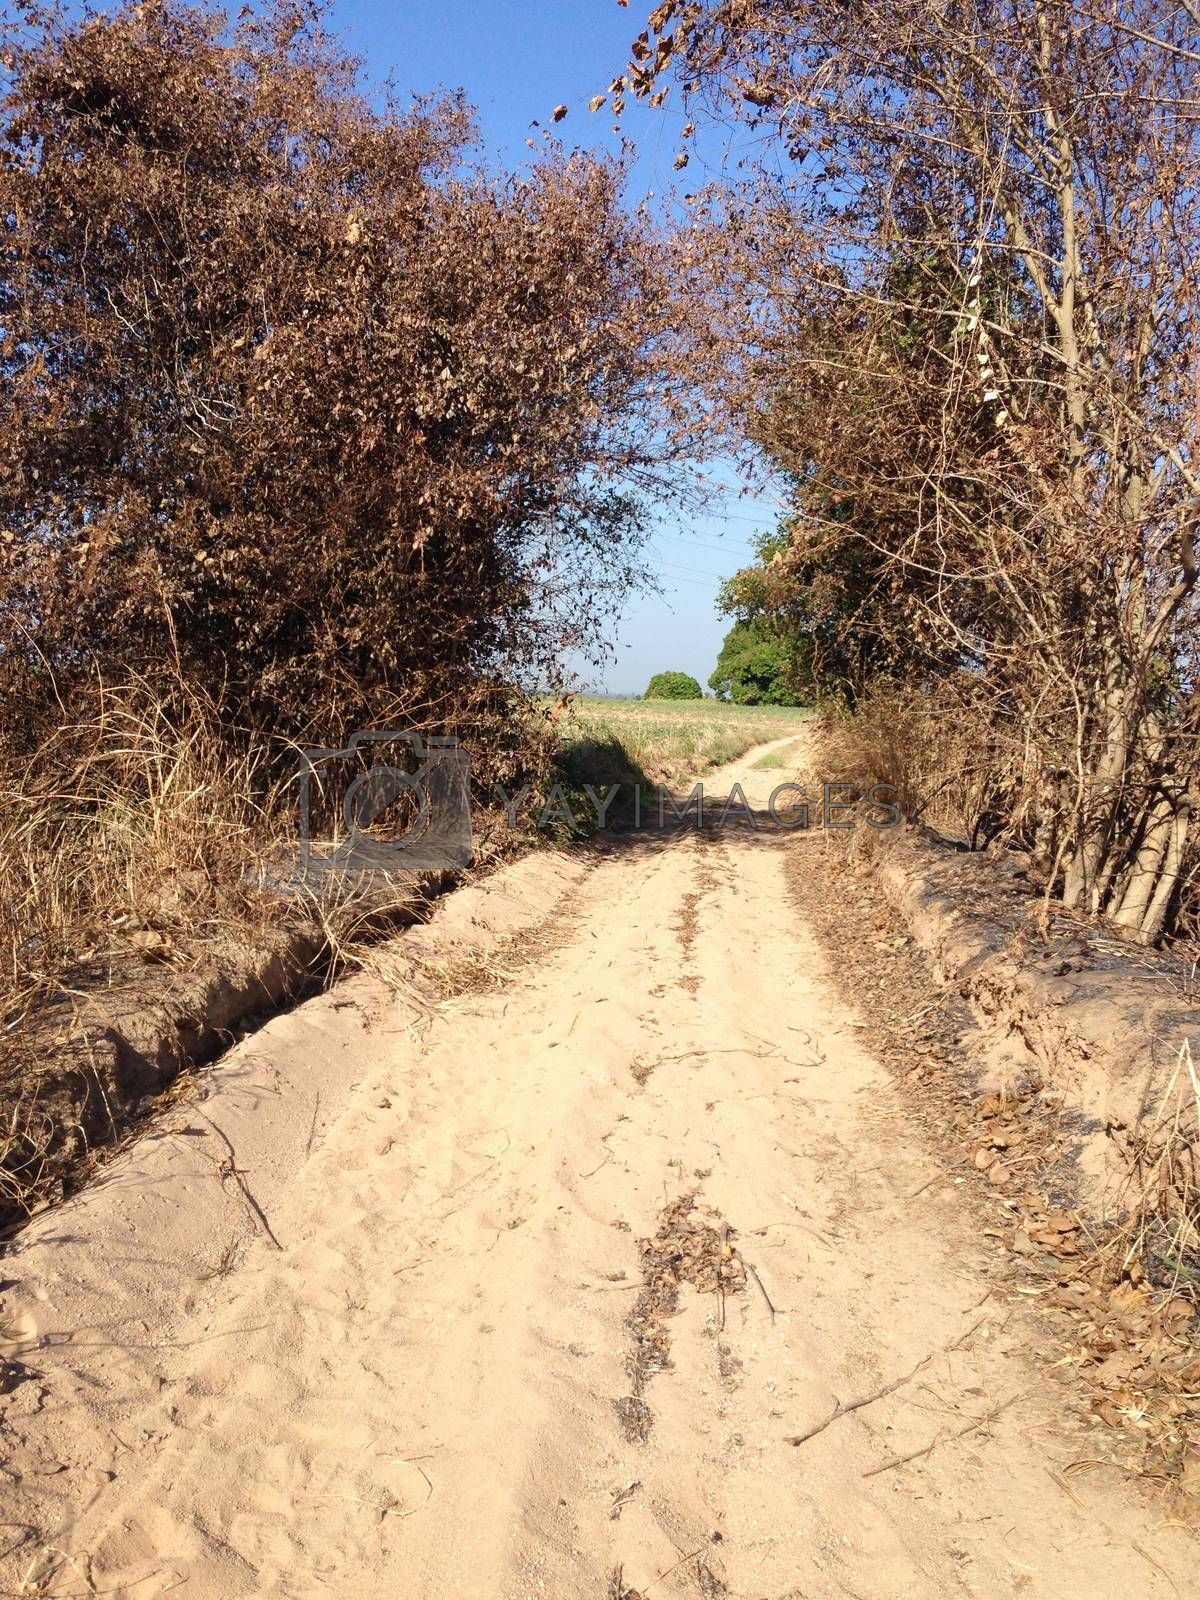 Royalty free image of the sand path for trail by pandara